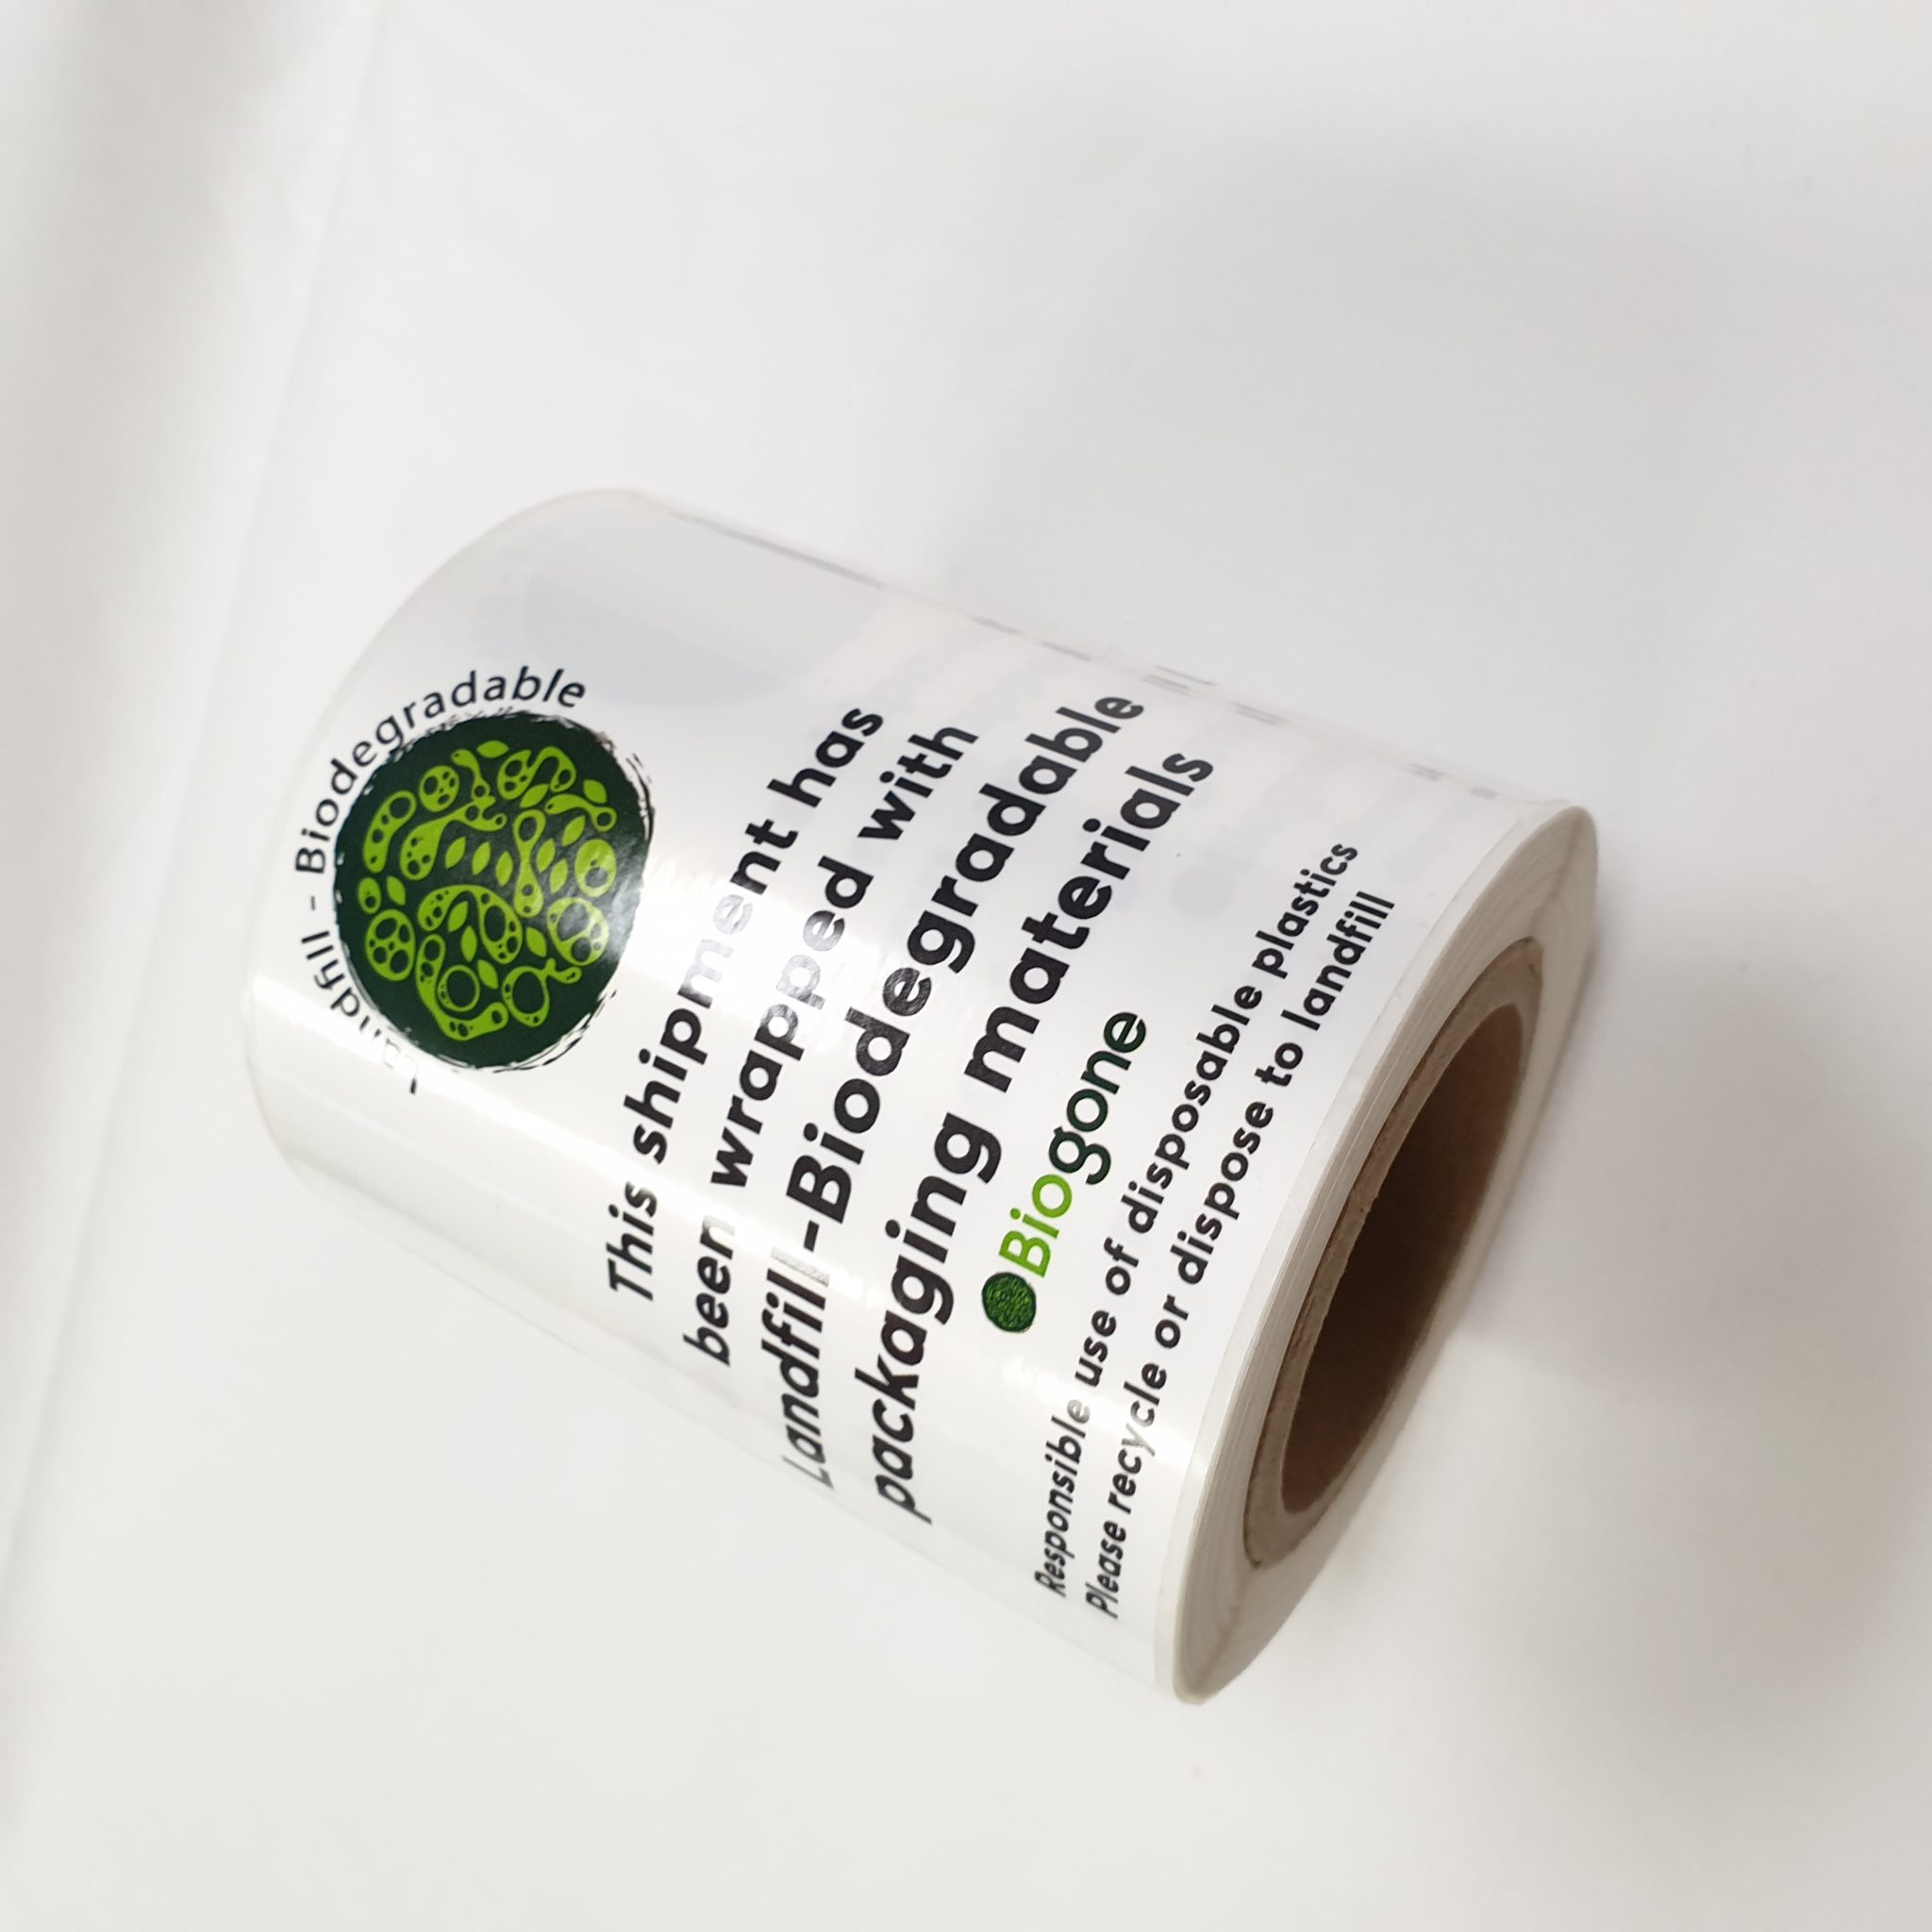 Roll of 200 Landfill Biodegradable Packaging Stickers